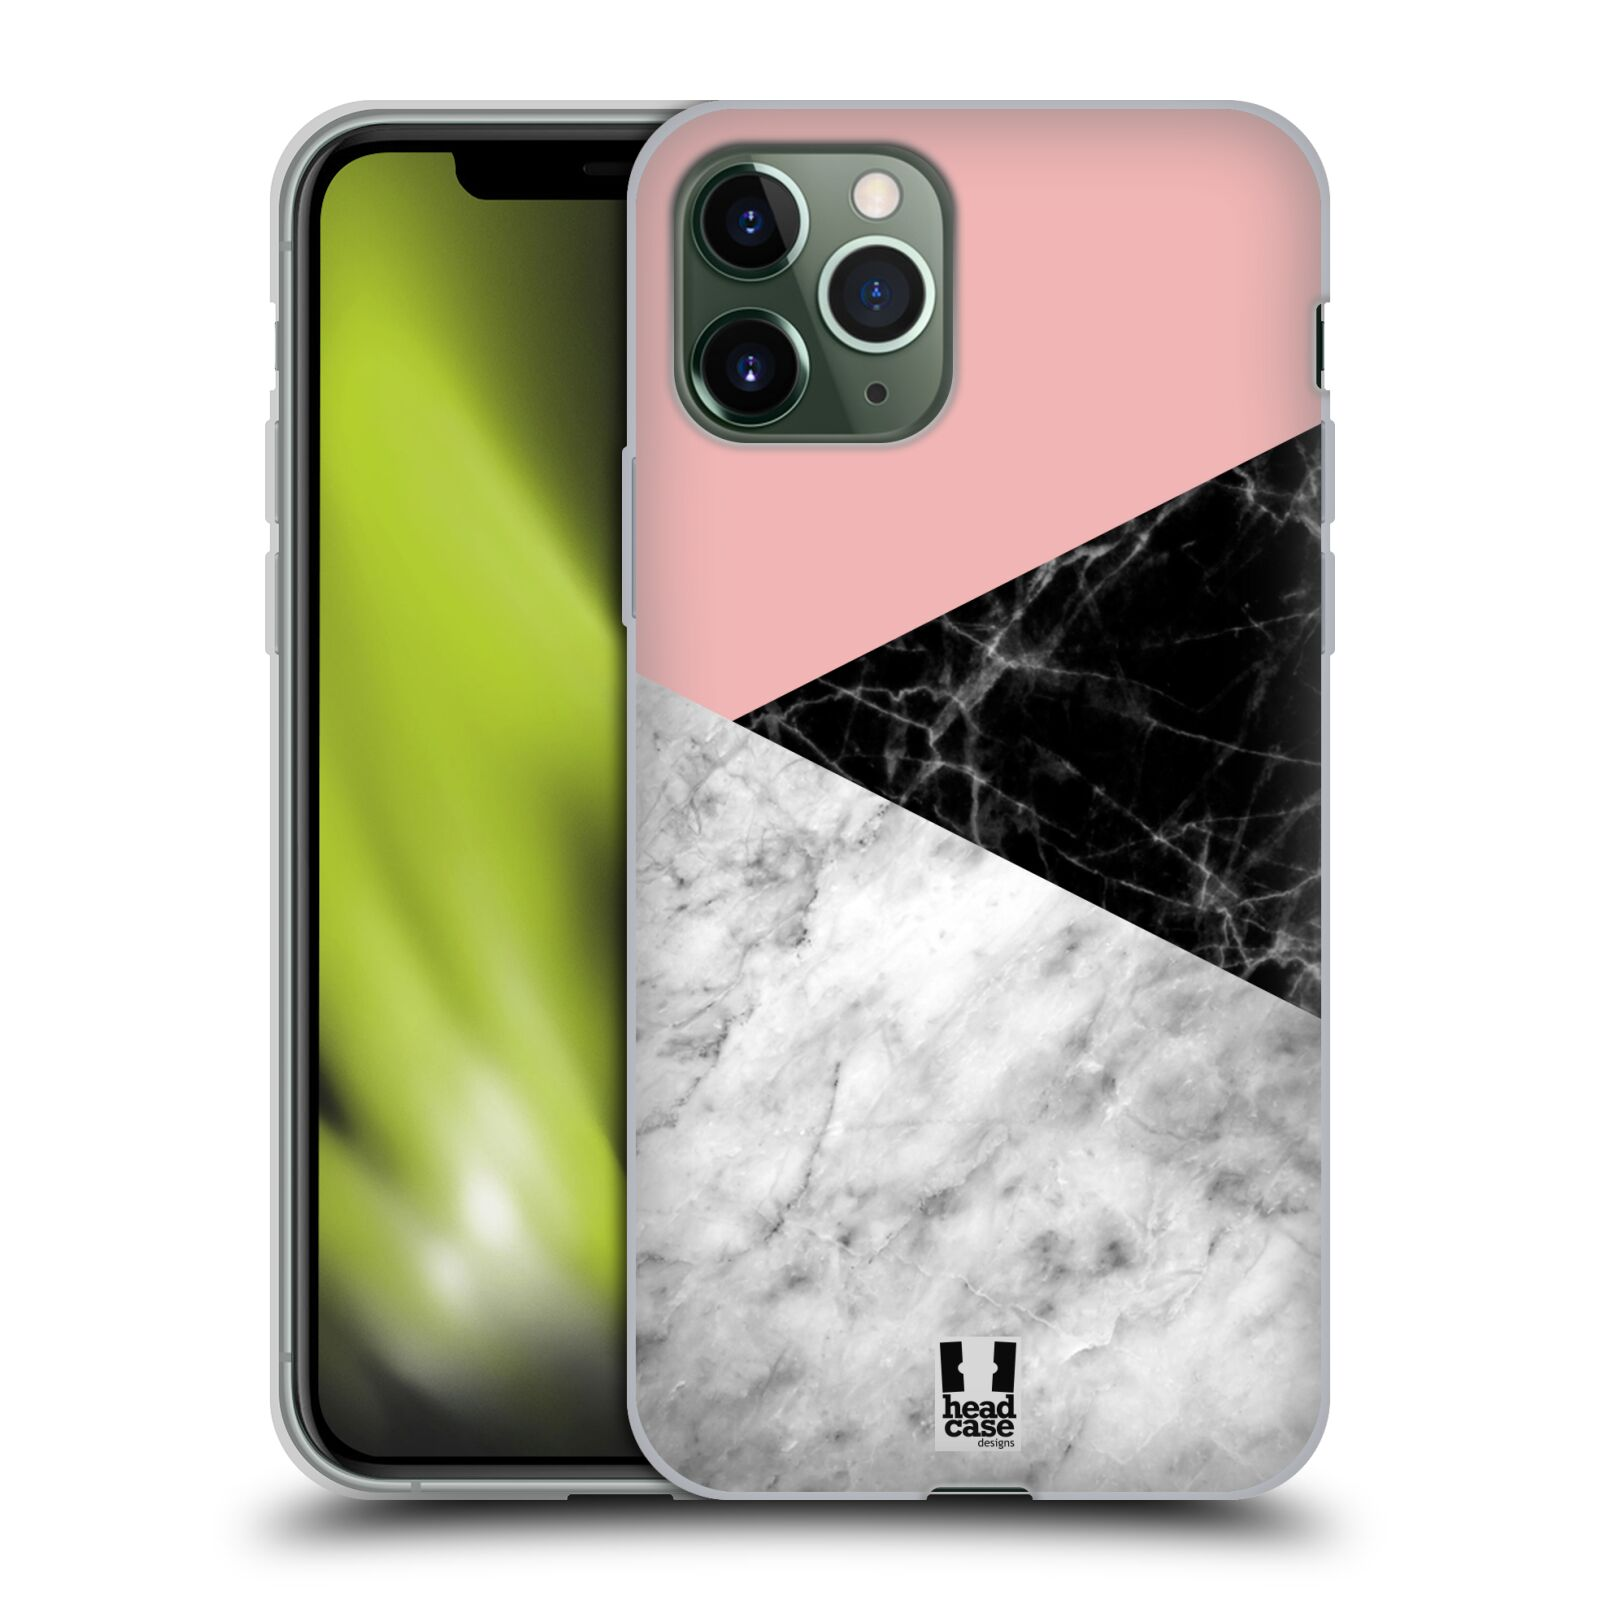 lagerfeld obaly iphone 6s plus | Silikonové pouzdro na mobil Apple iPhone 11 Pro - Head Case - Mramor mix